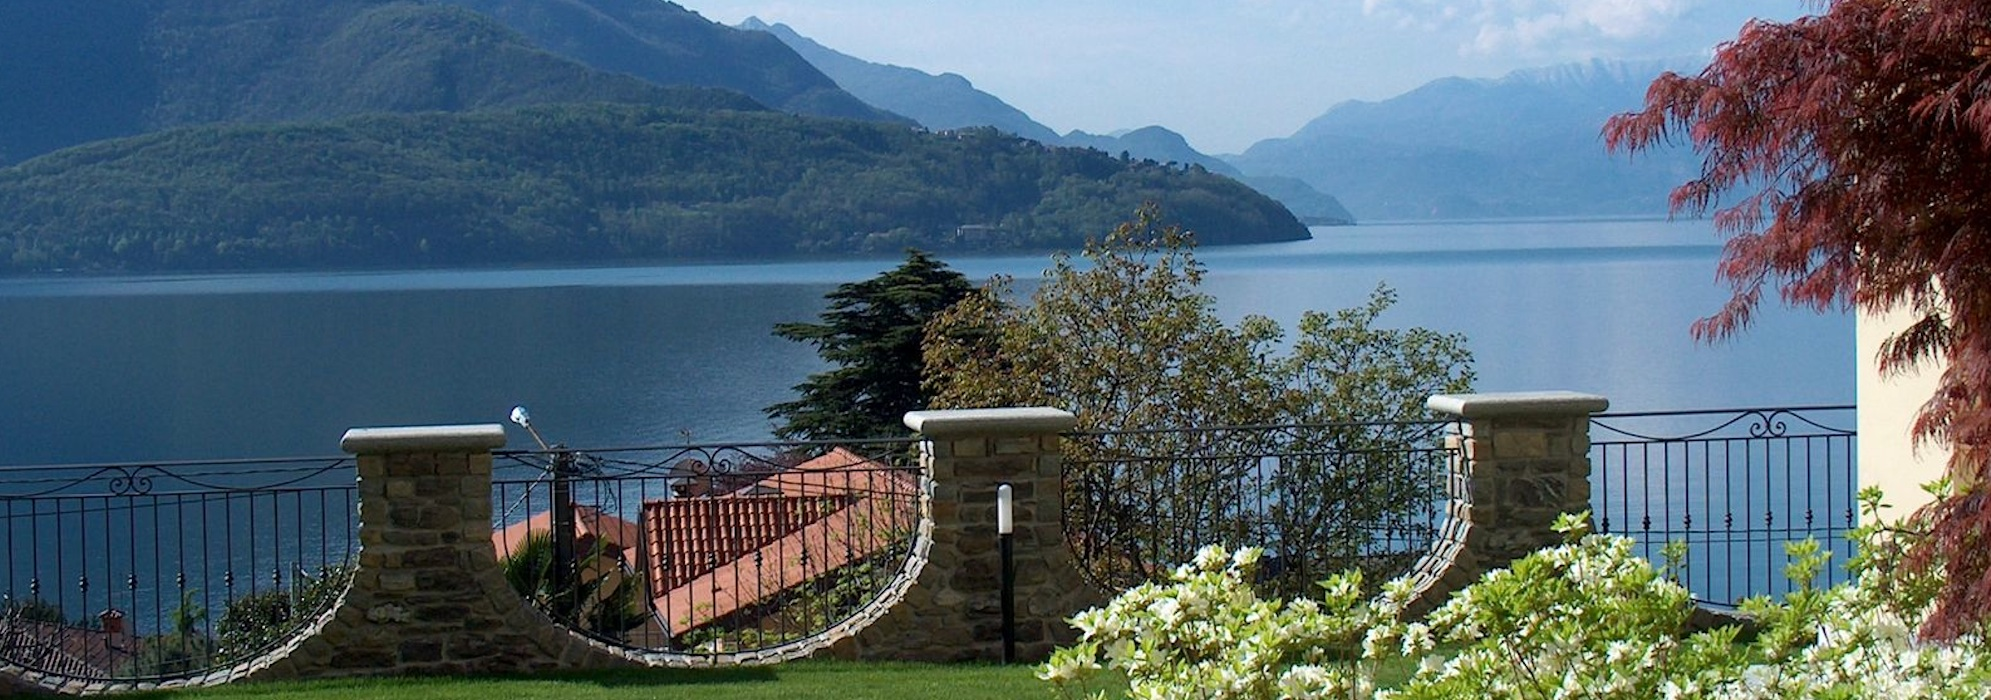 Lake Como Luxury Villa Domaso with Pool